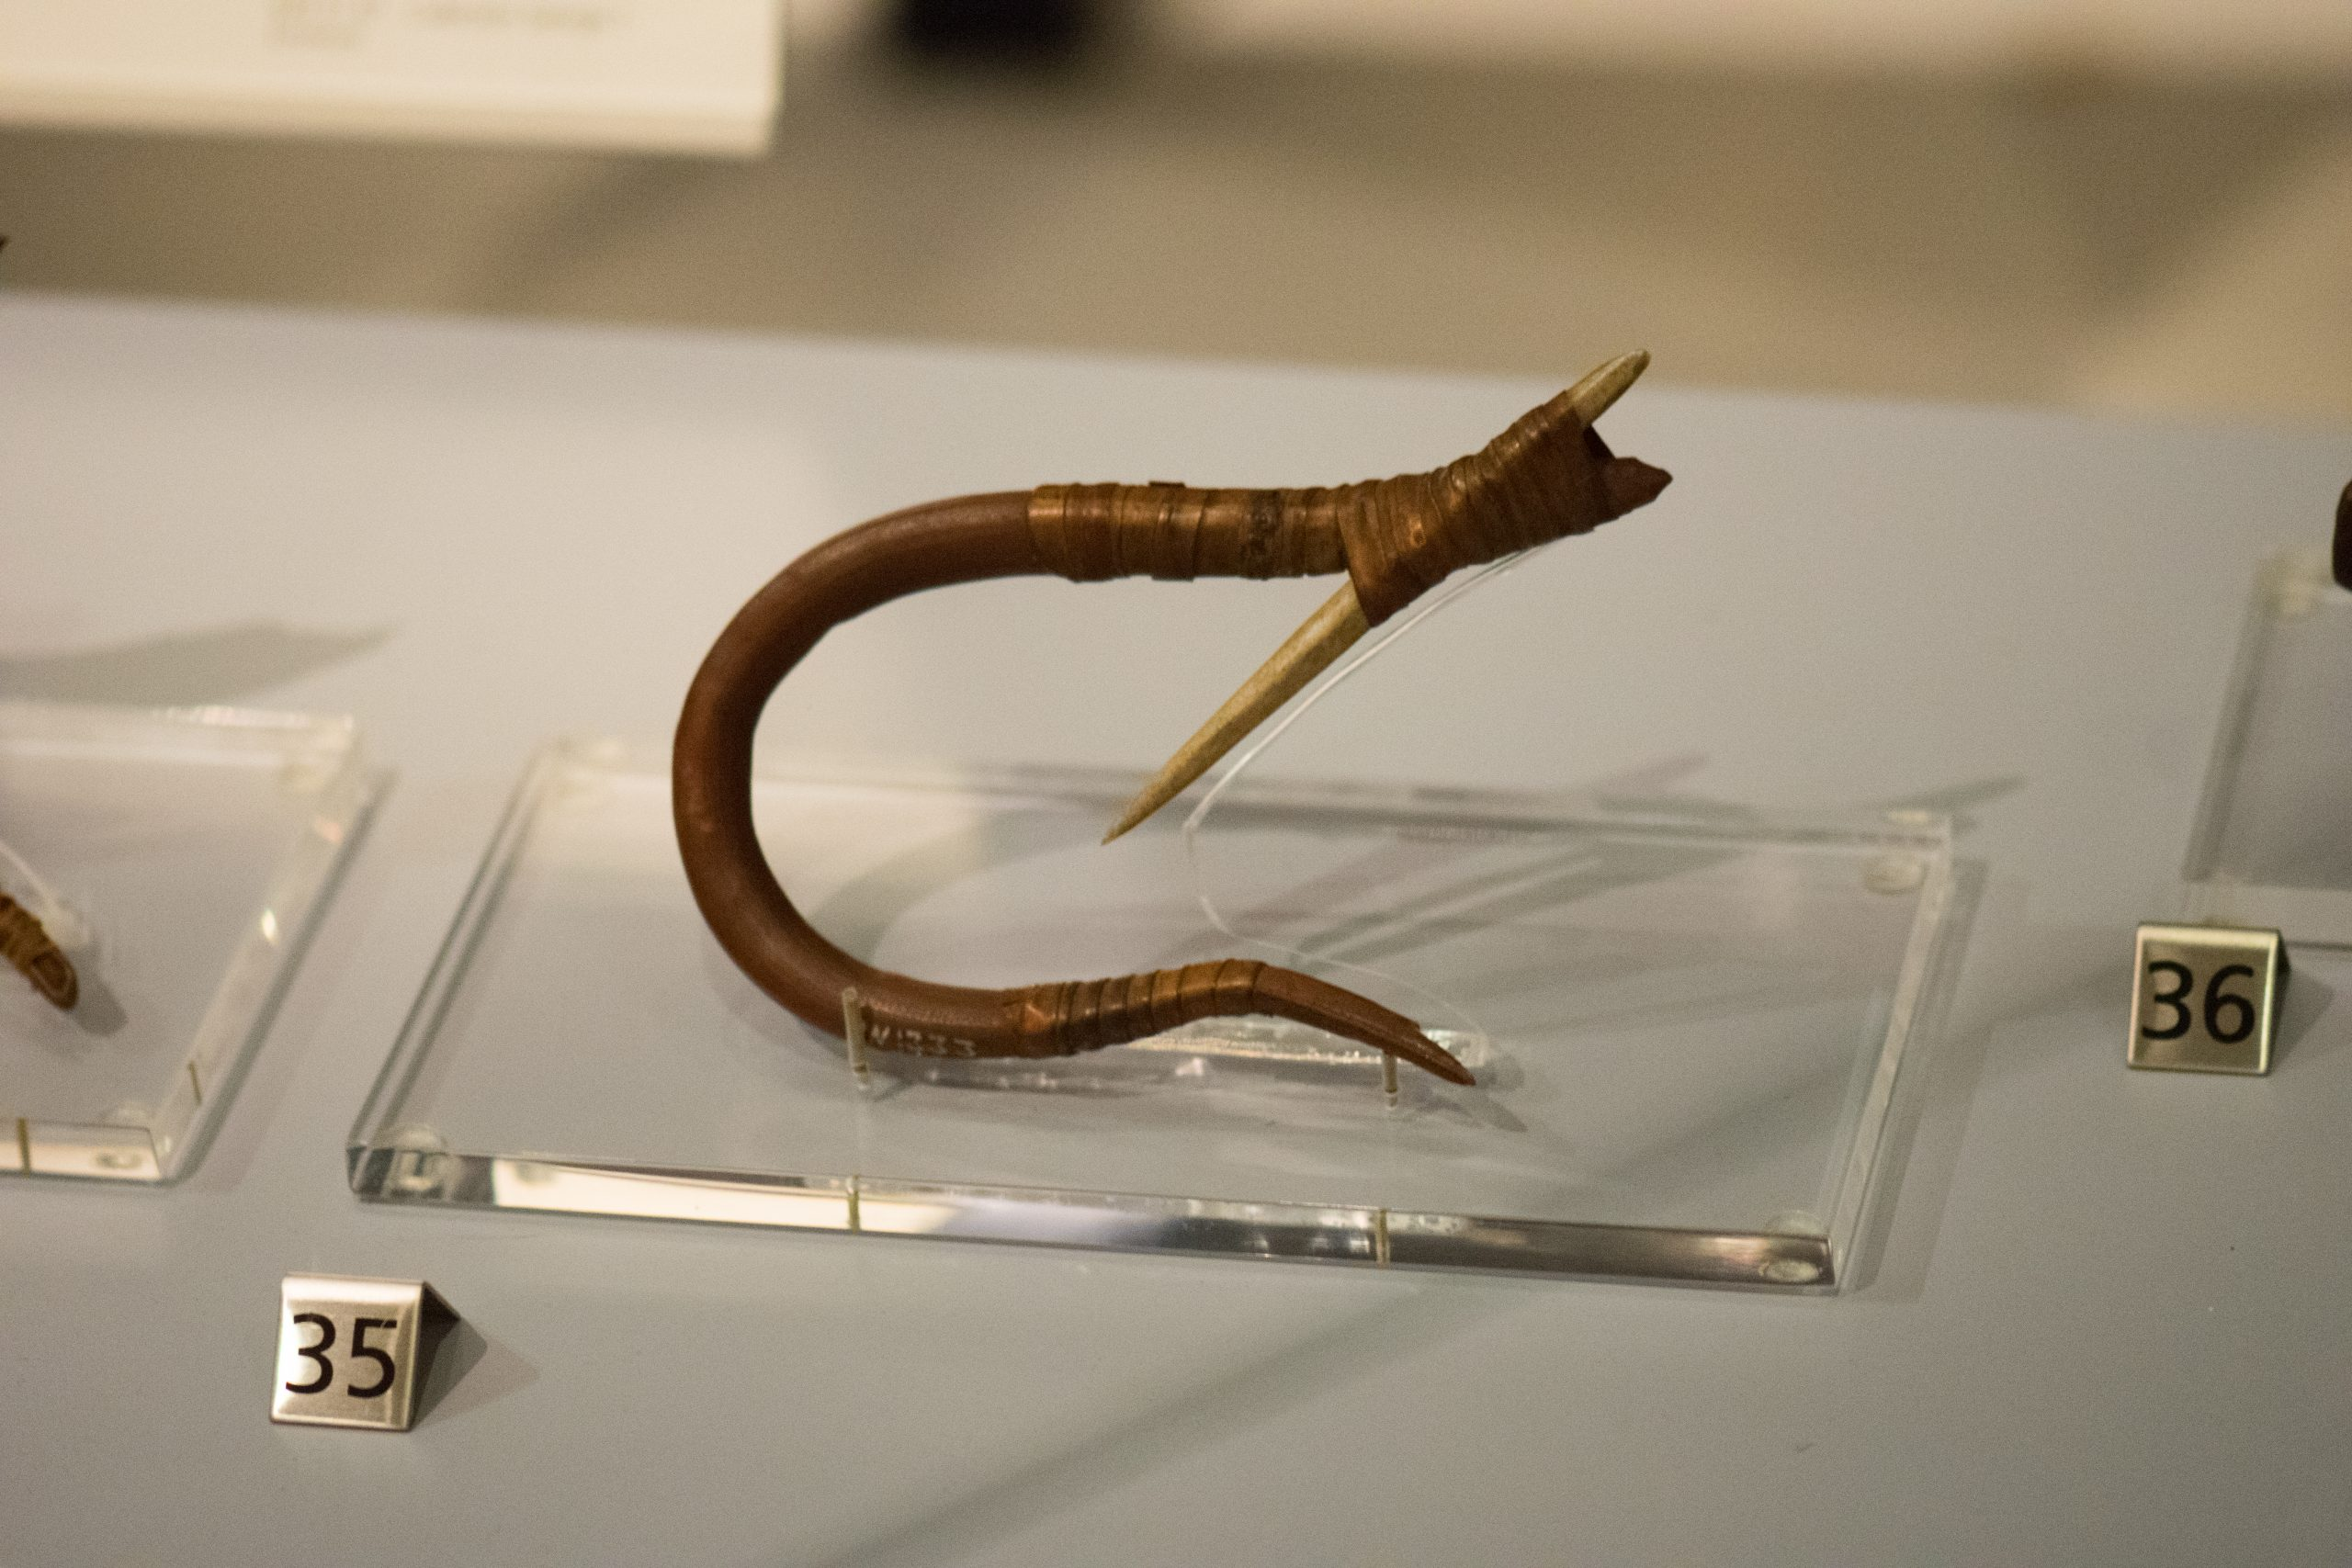 A 200 year old fishing hook made of bone and plant fibers by members of Haida First Nation. Photographer: Thomas Quine/Credits: Royal Ontario Museum, 2017